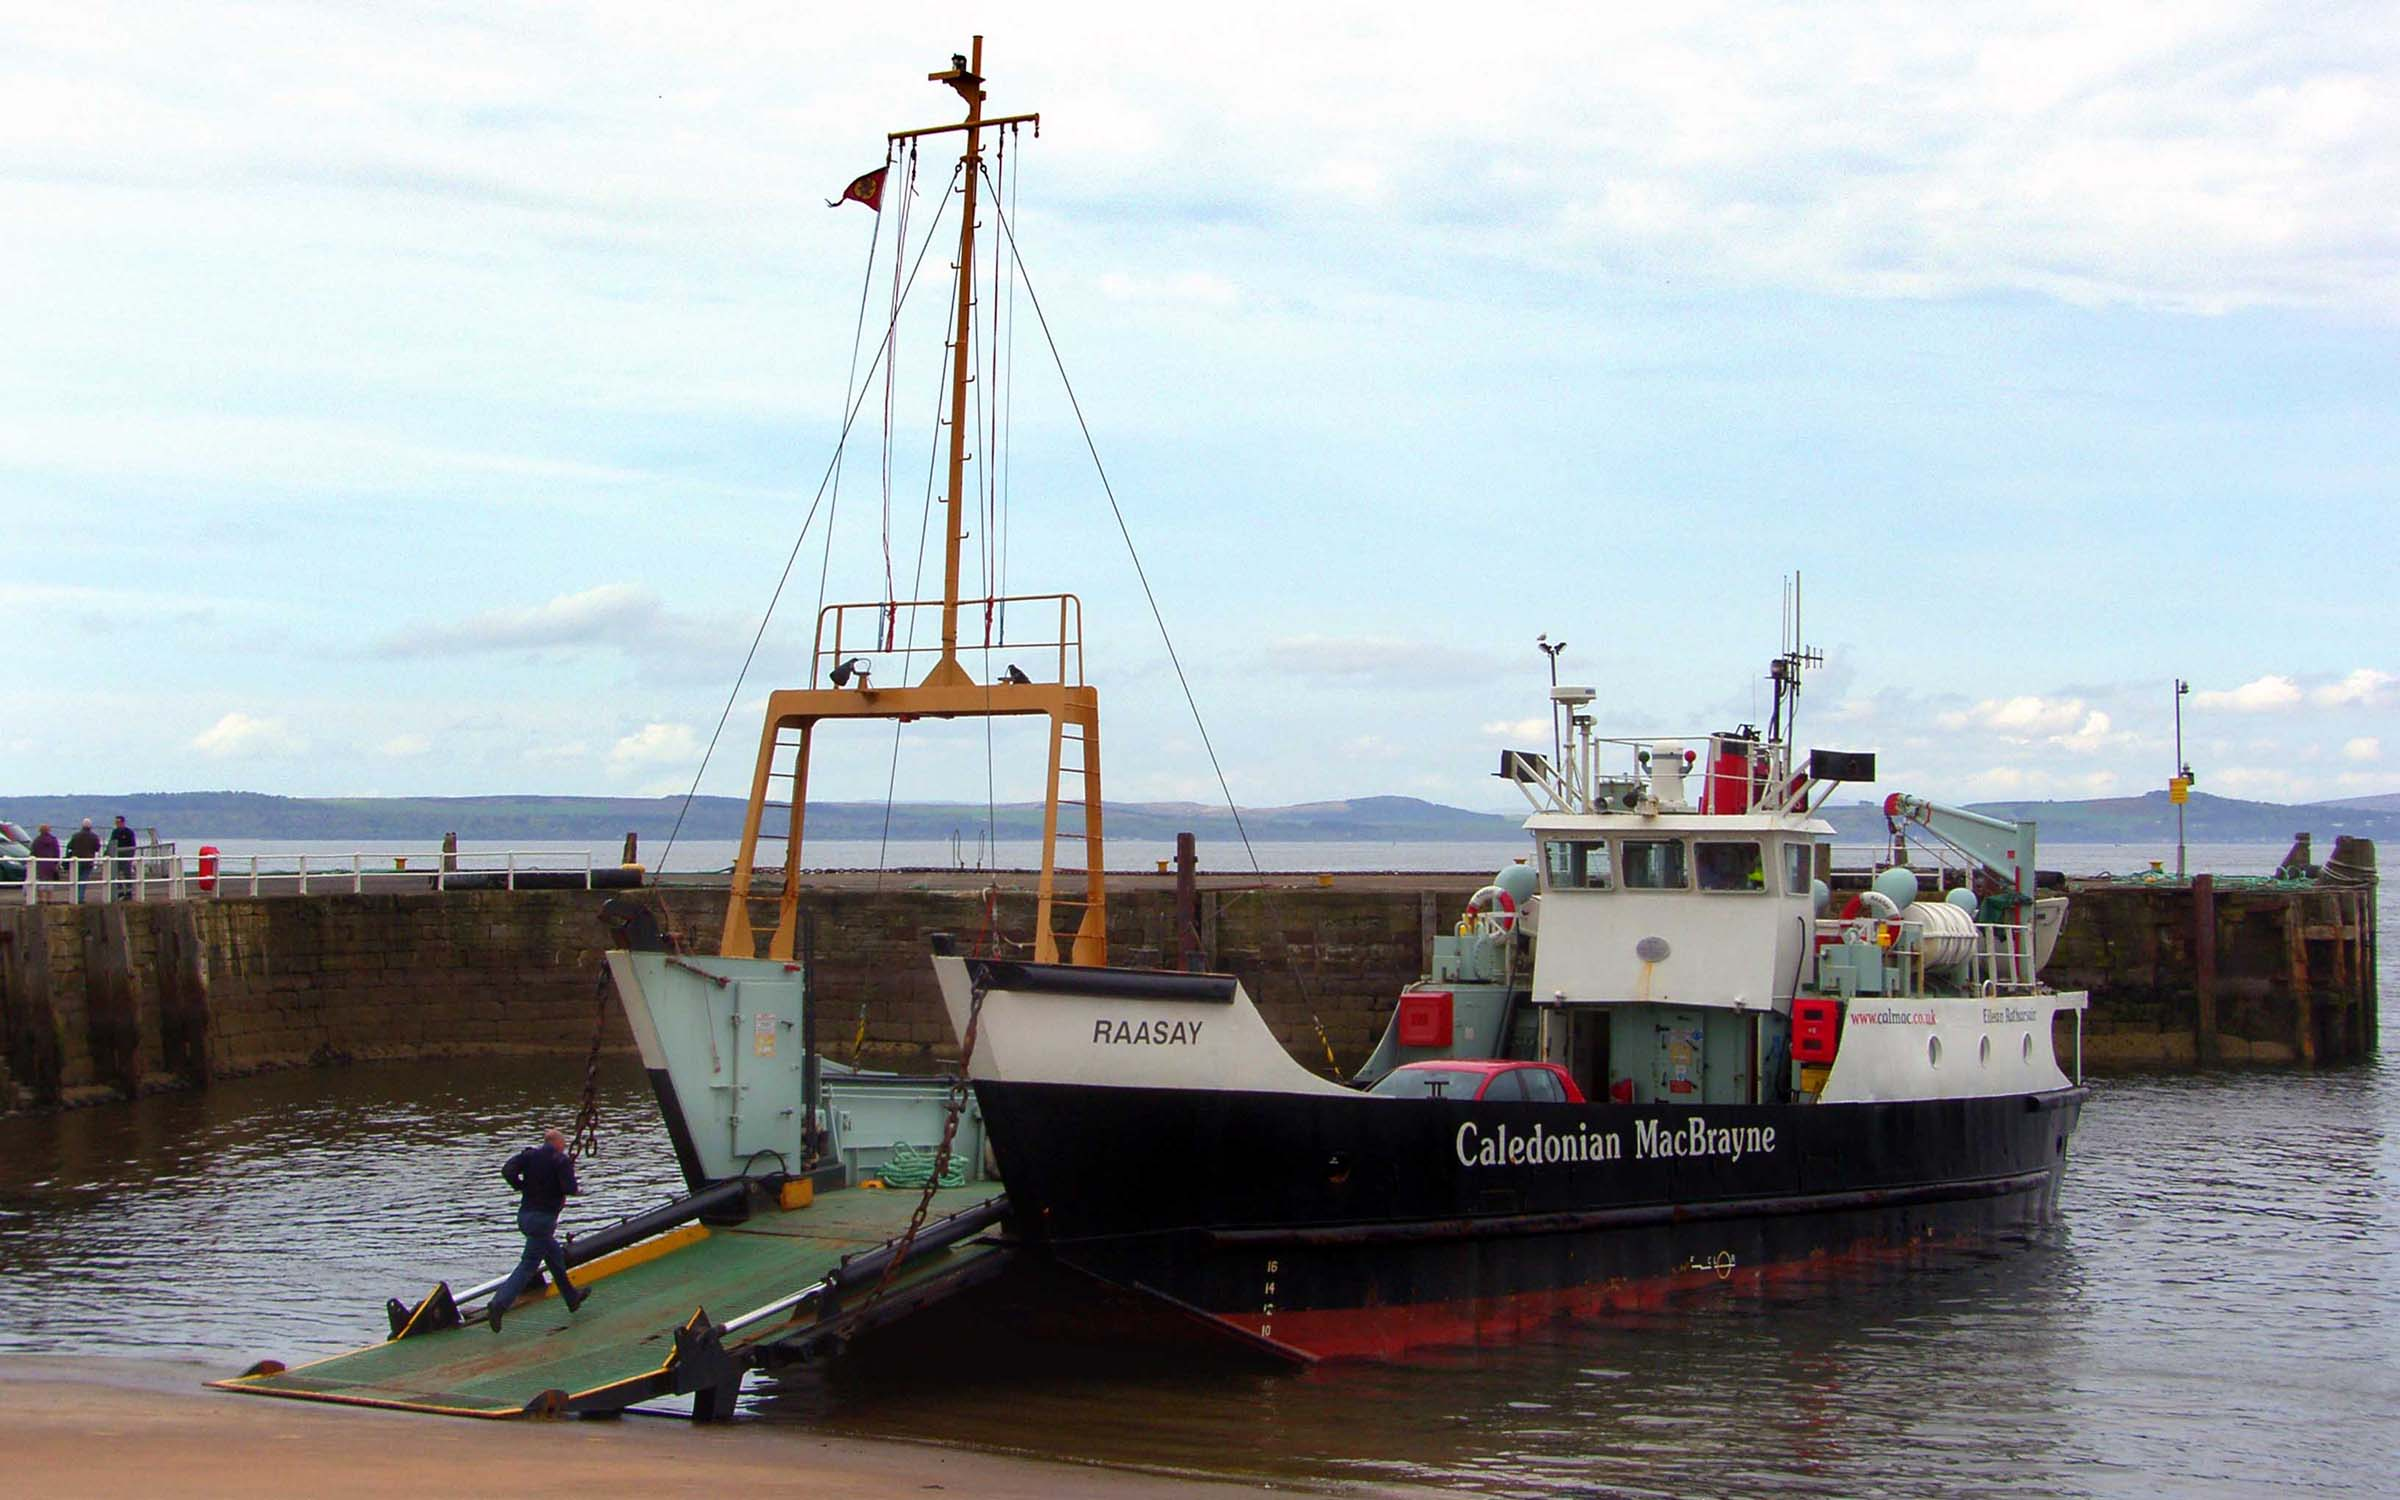 Raasay unloading at Largs (Ships of CalMac)